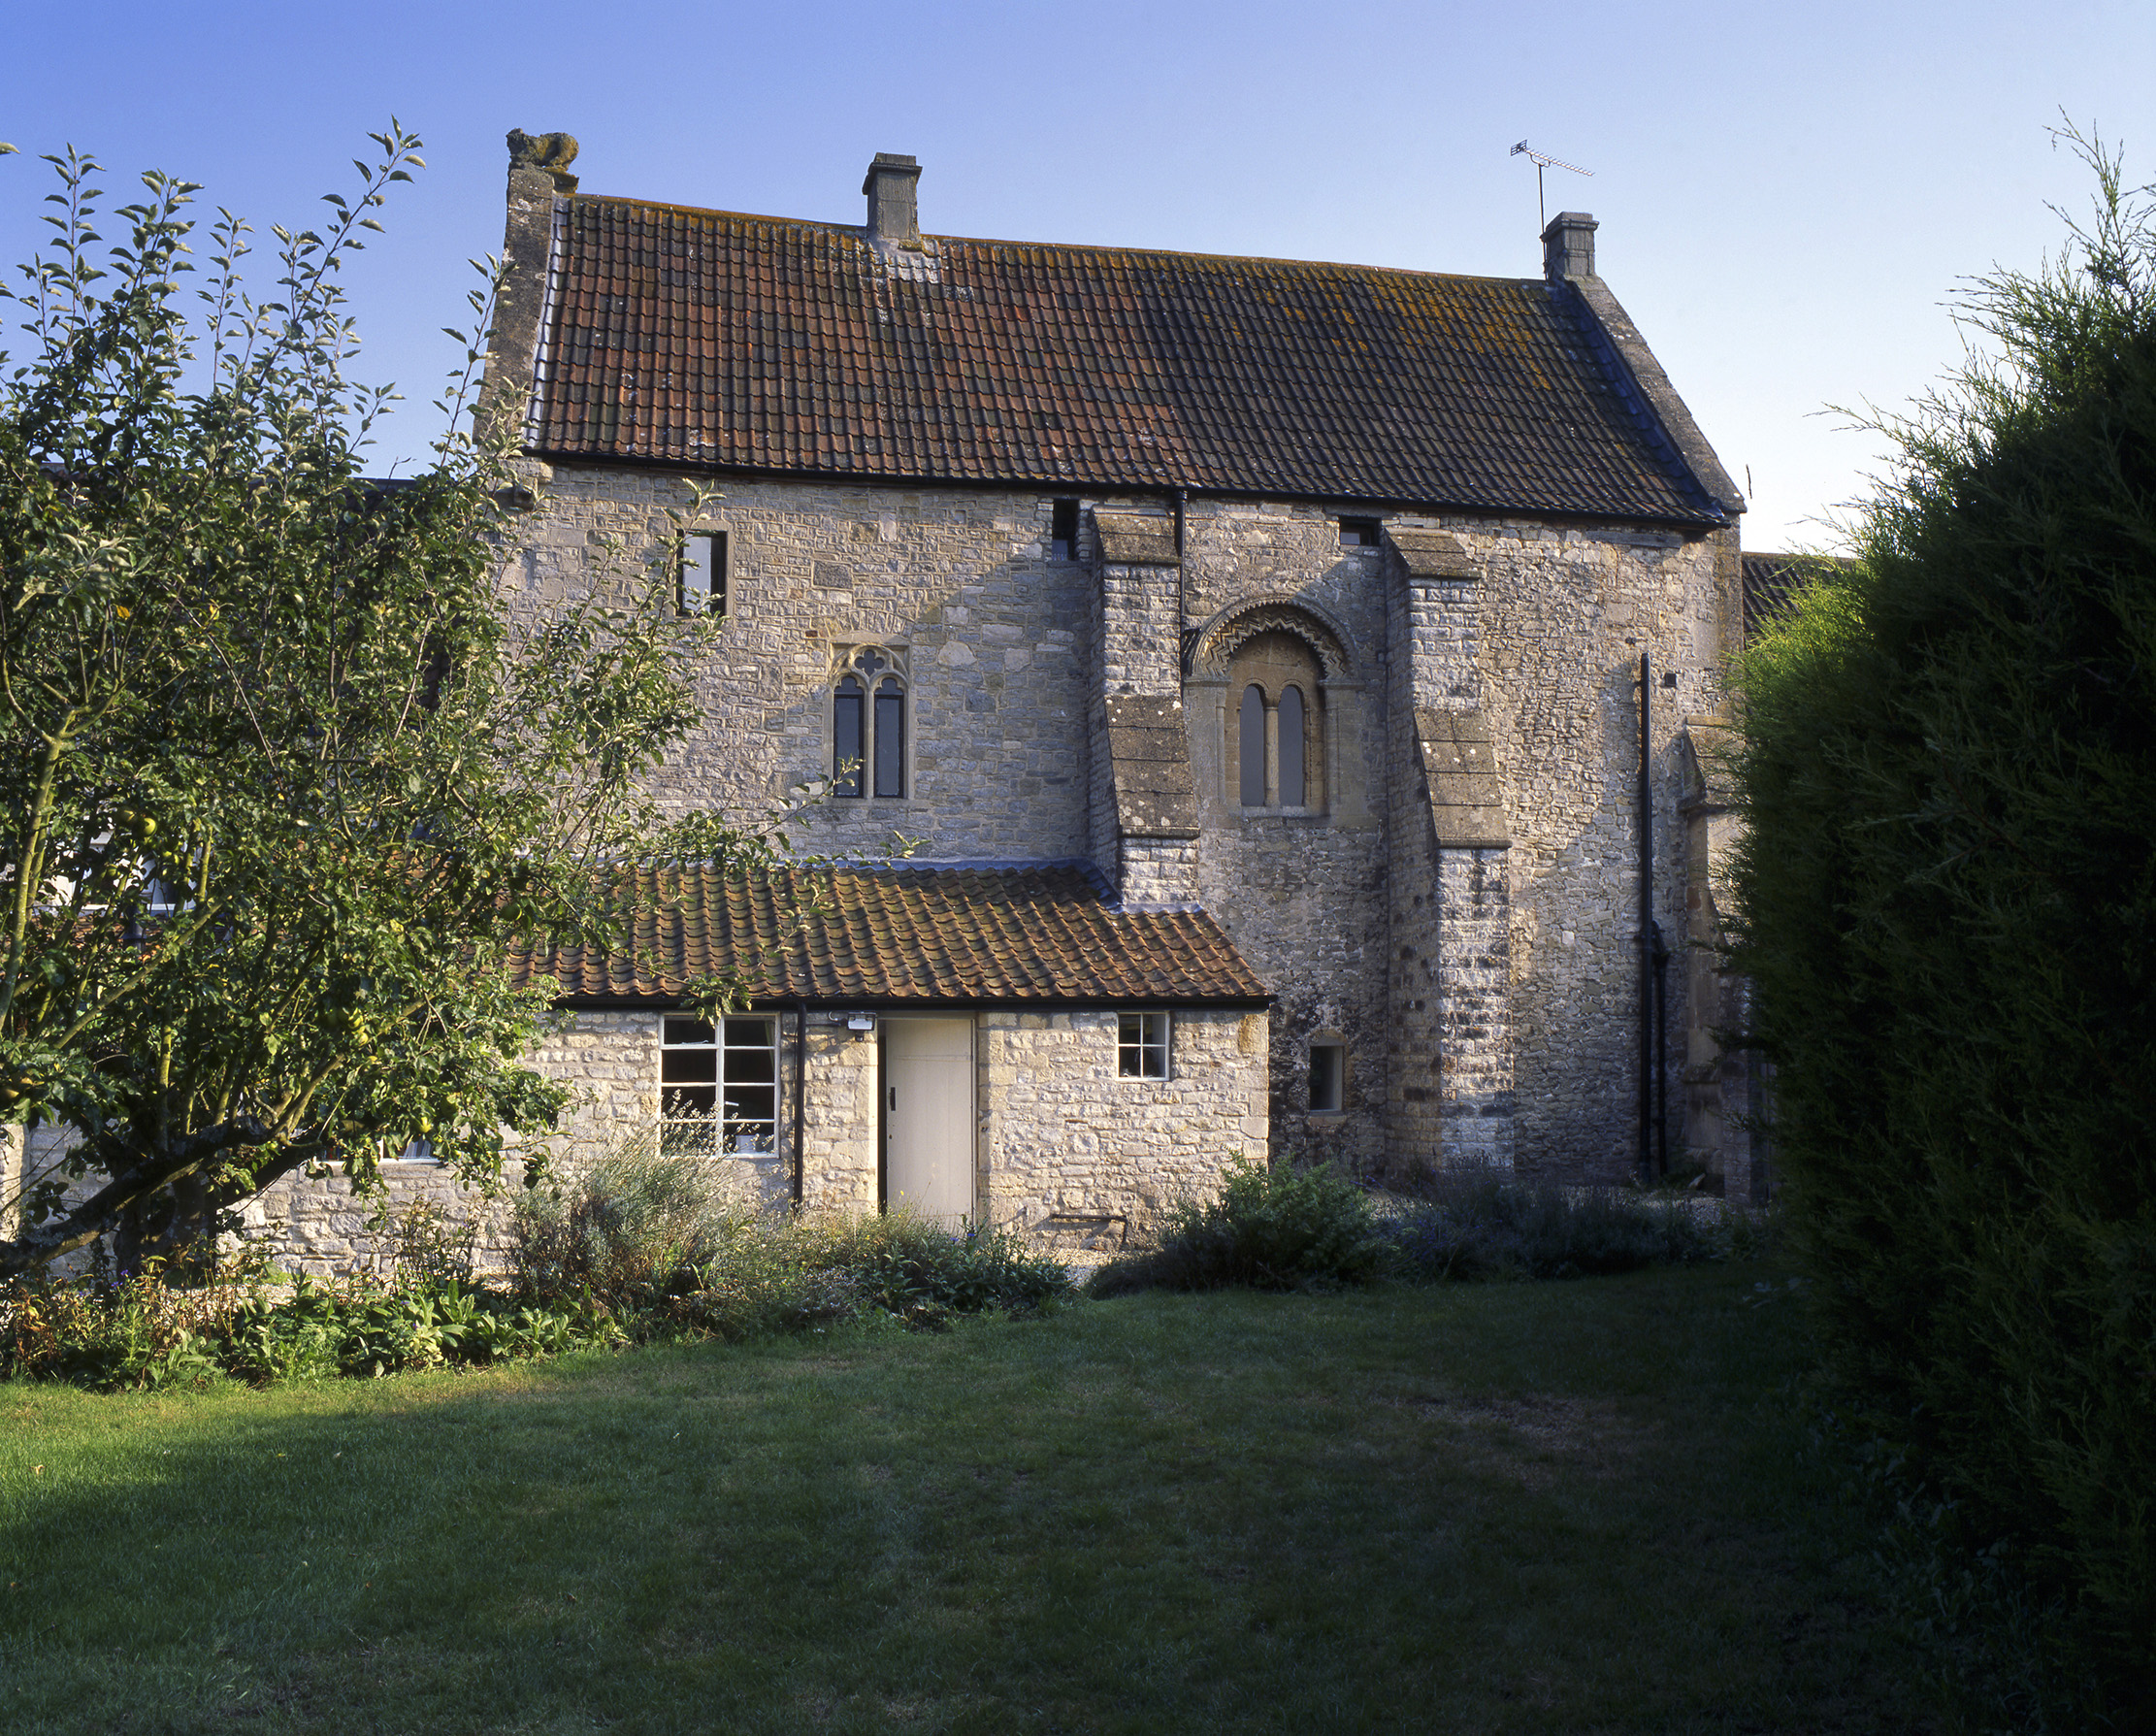 The oldest house in Britain — and how we were able to tell it apart from the other contenders